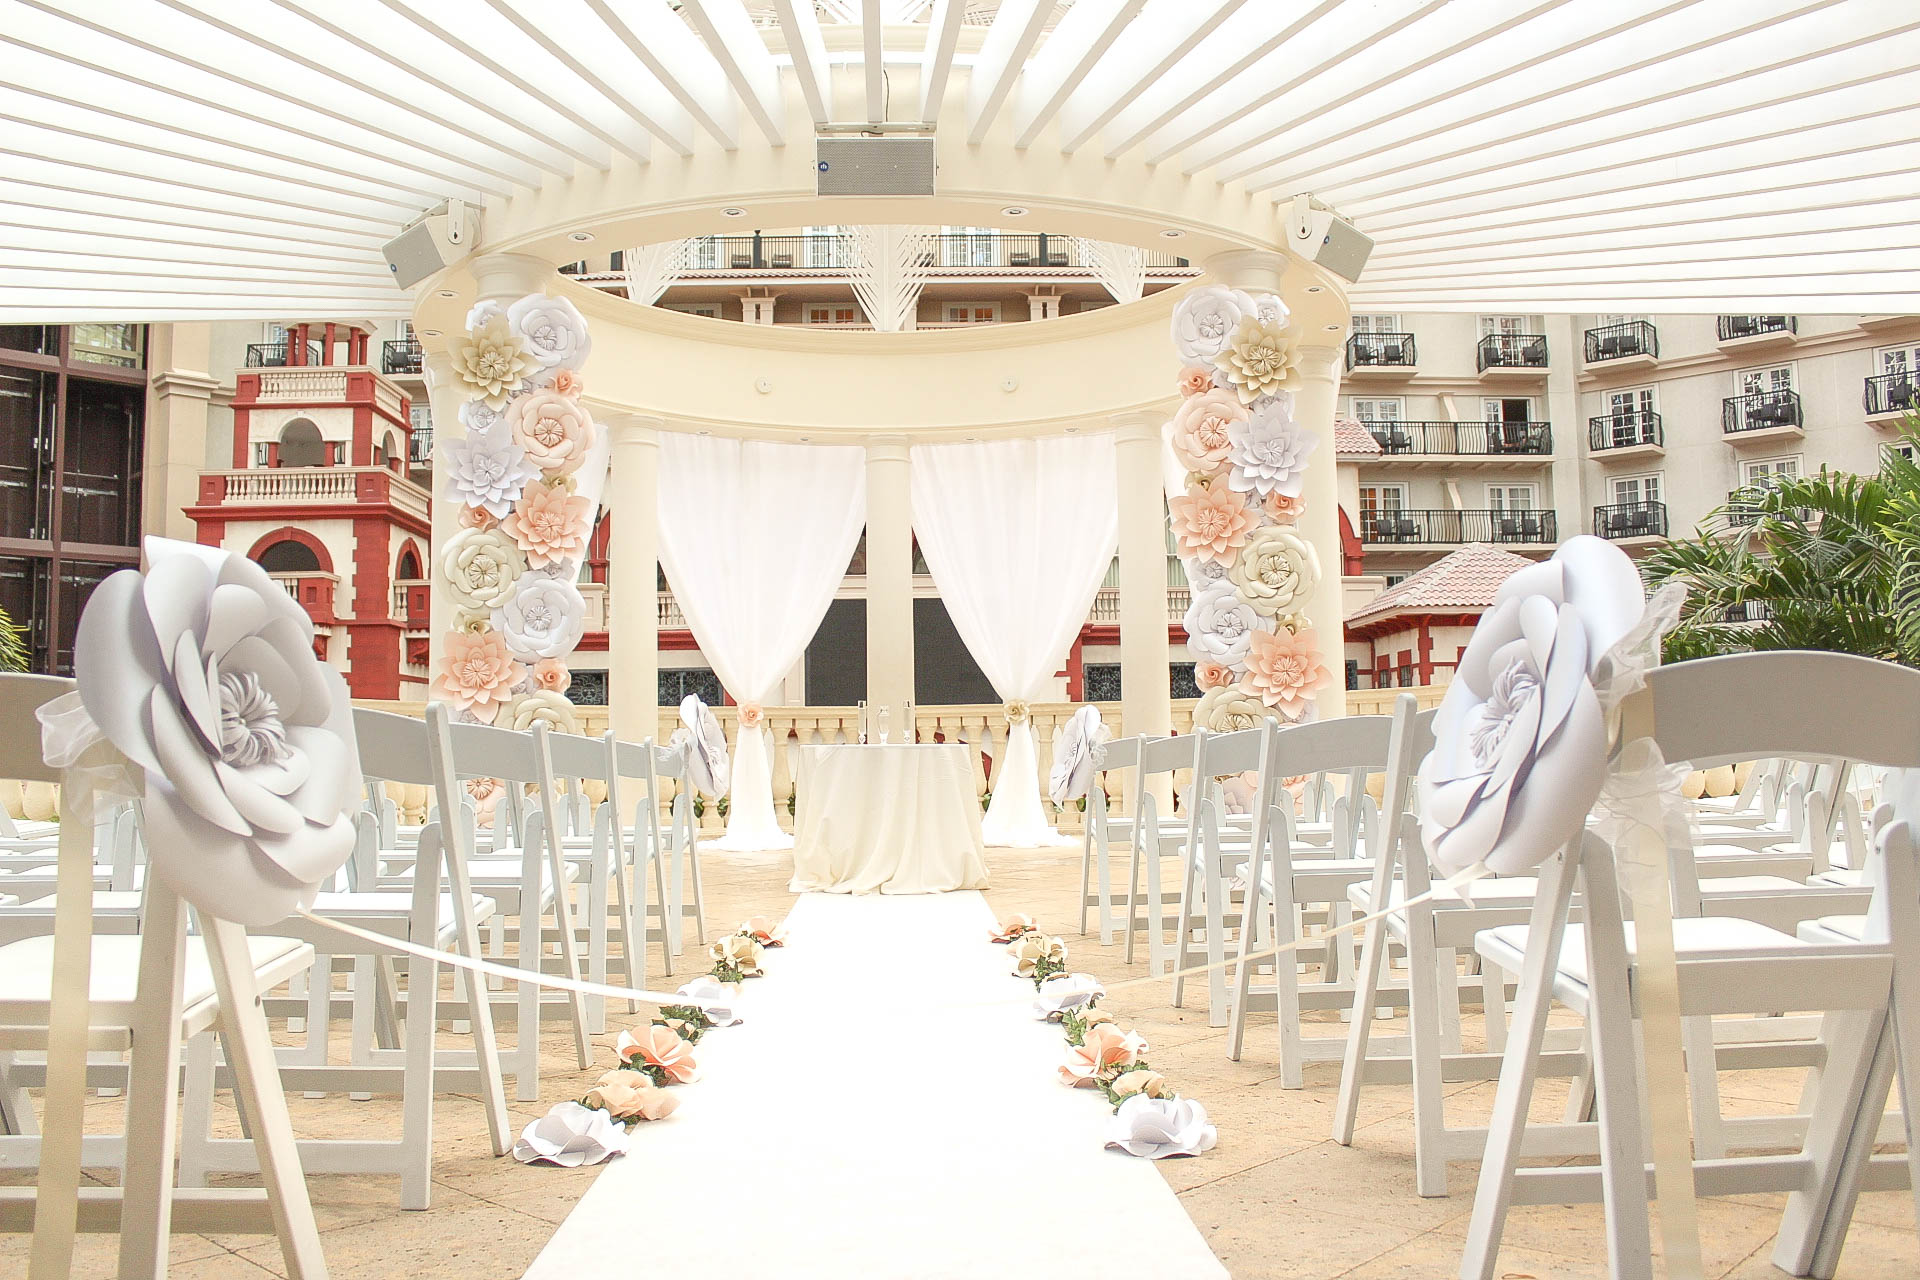 Dazzling Deco - ceremony set up with paper flower decorations